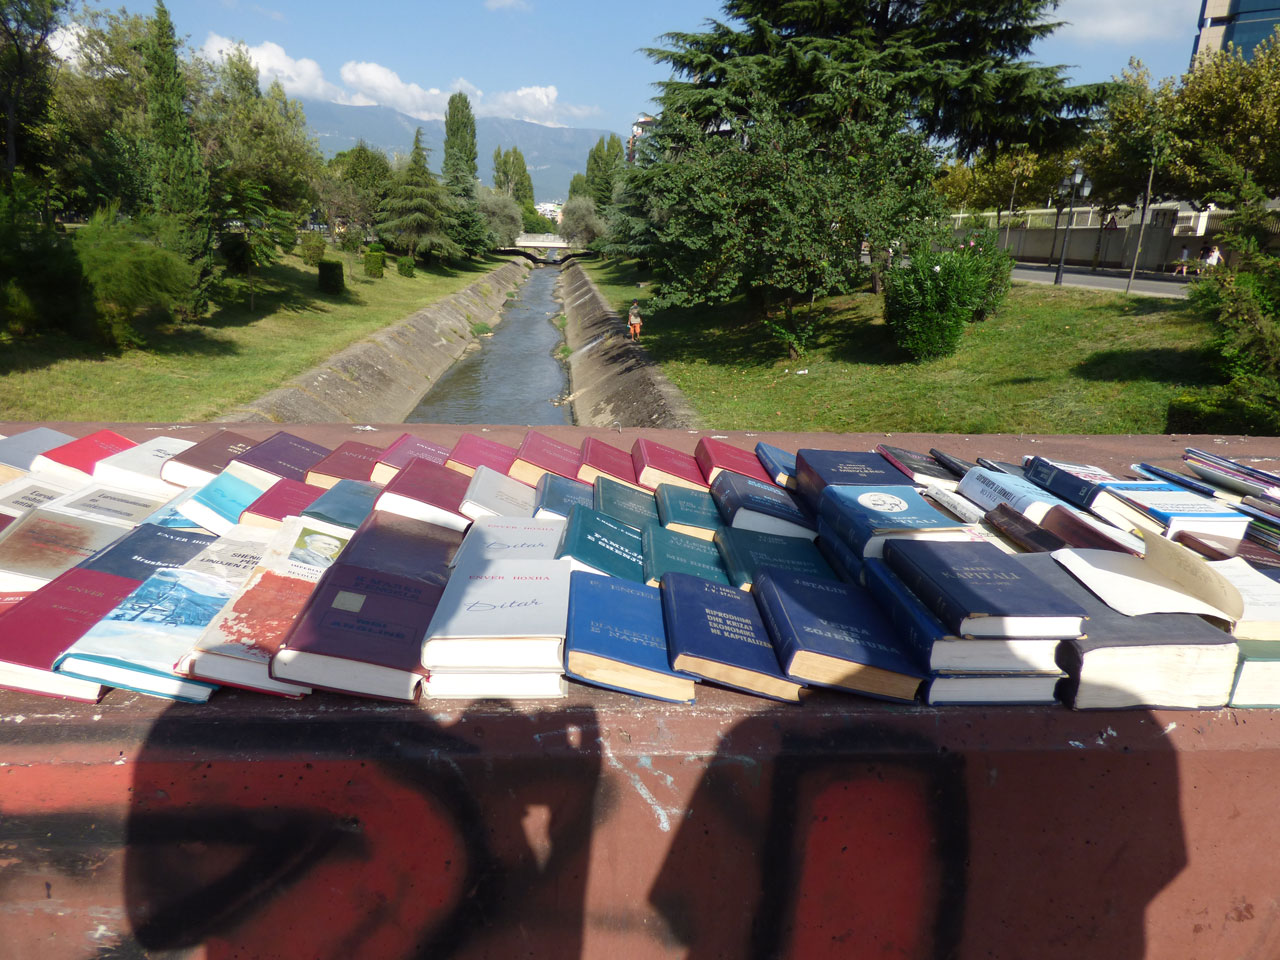 Marxist literature on sale by the Lana River, Tirana, Albania